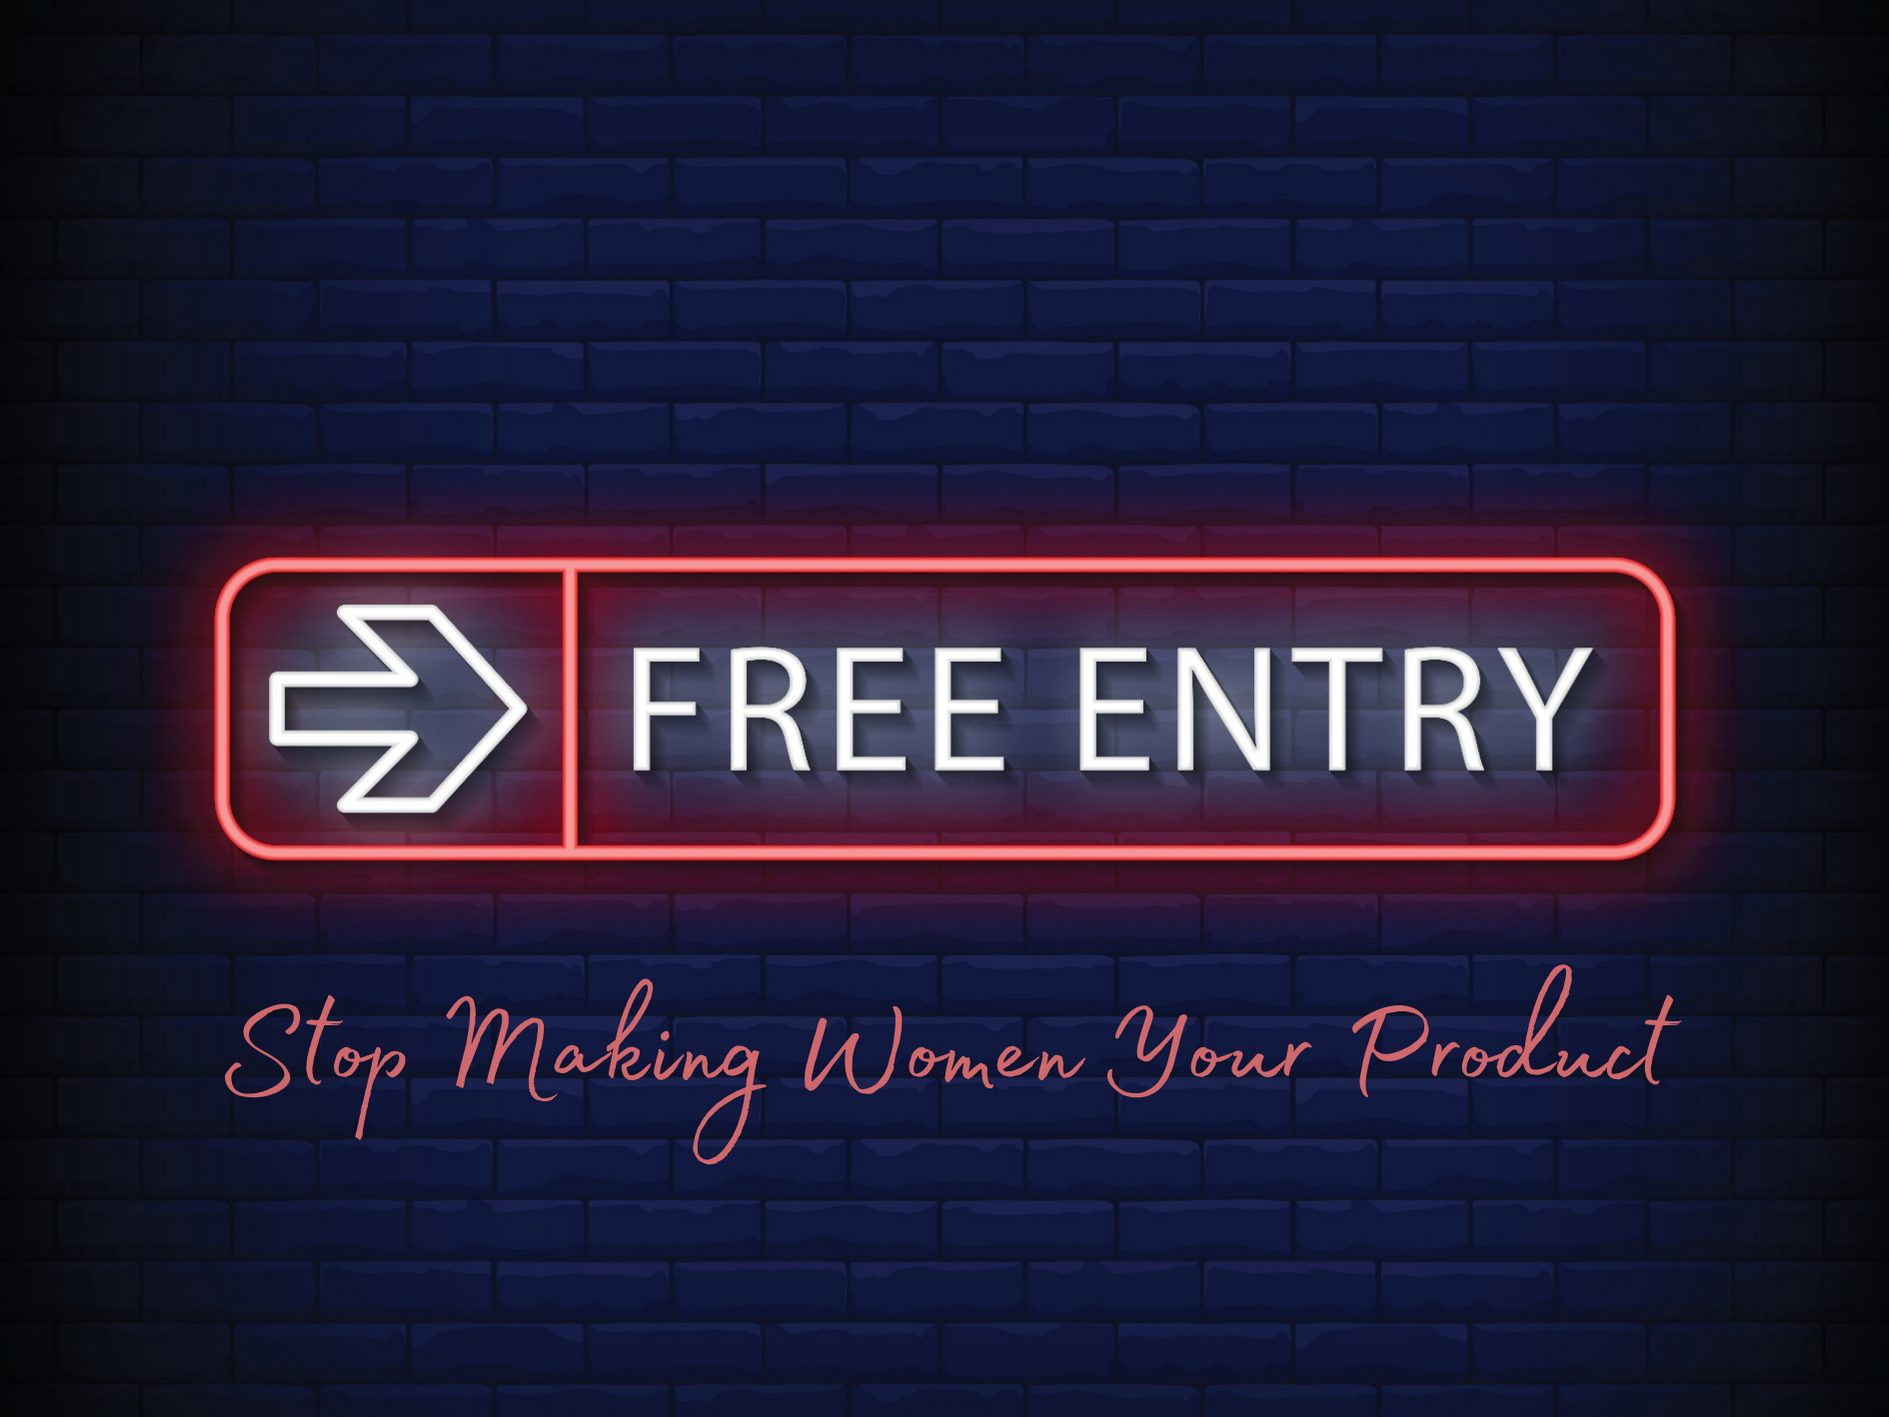 Free Entry: Stop Making Women Your Product